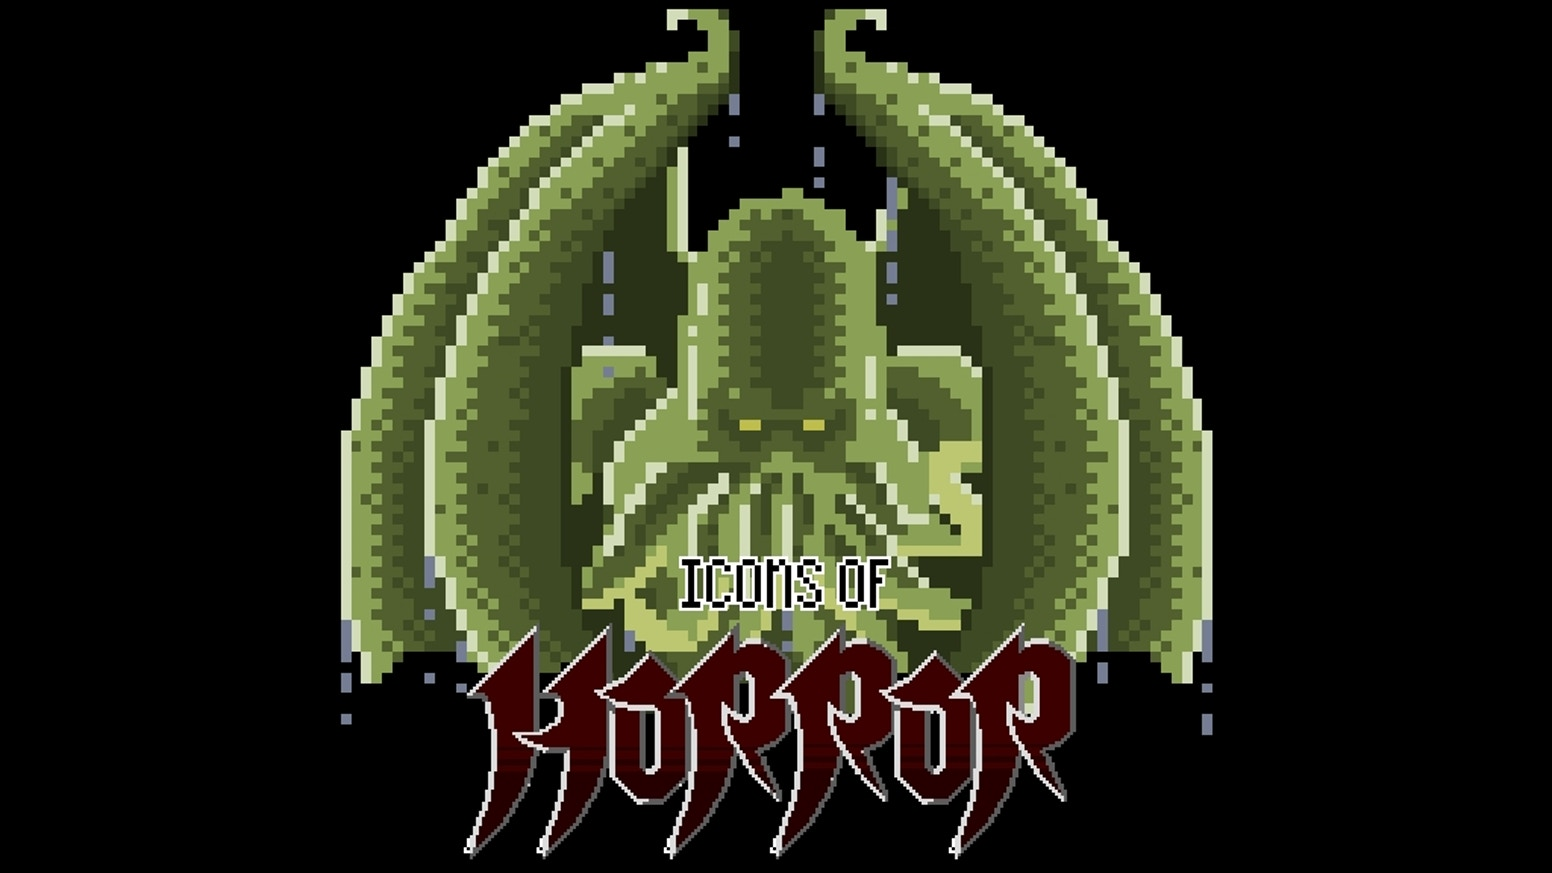 A 50-page pixel art collection of iconic horror characters.